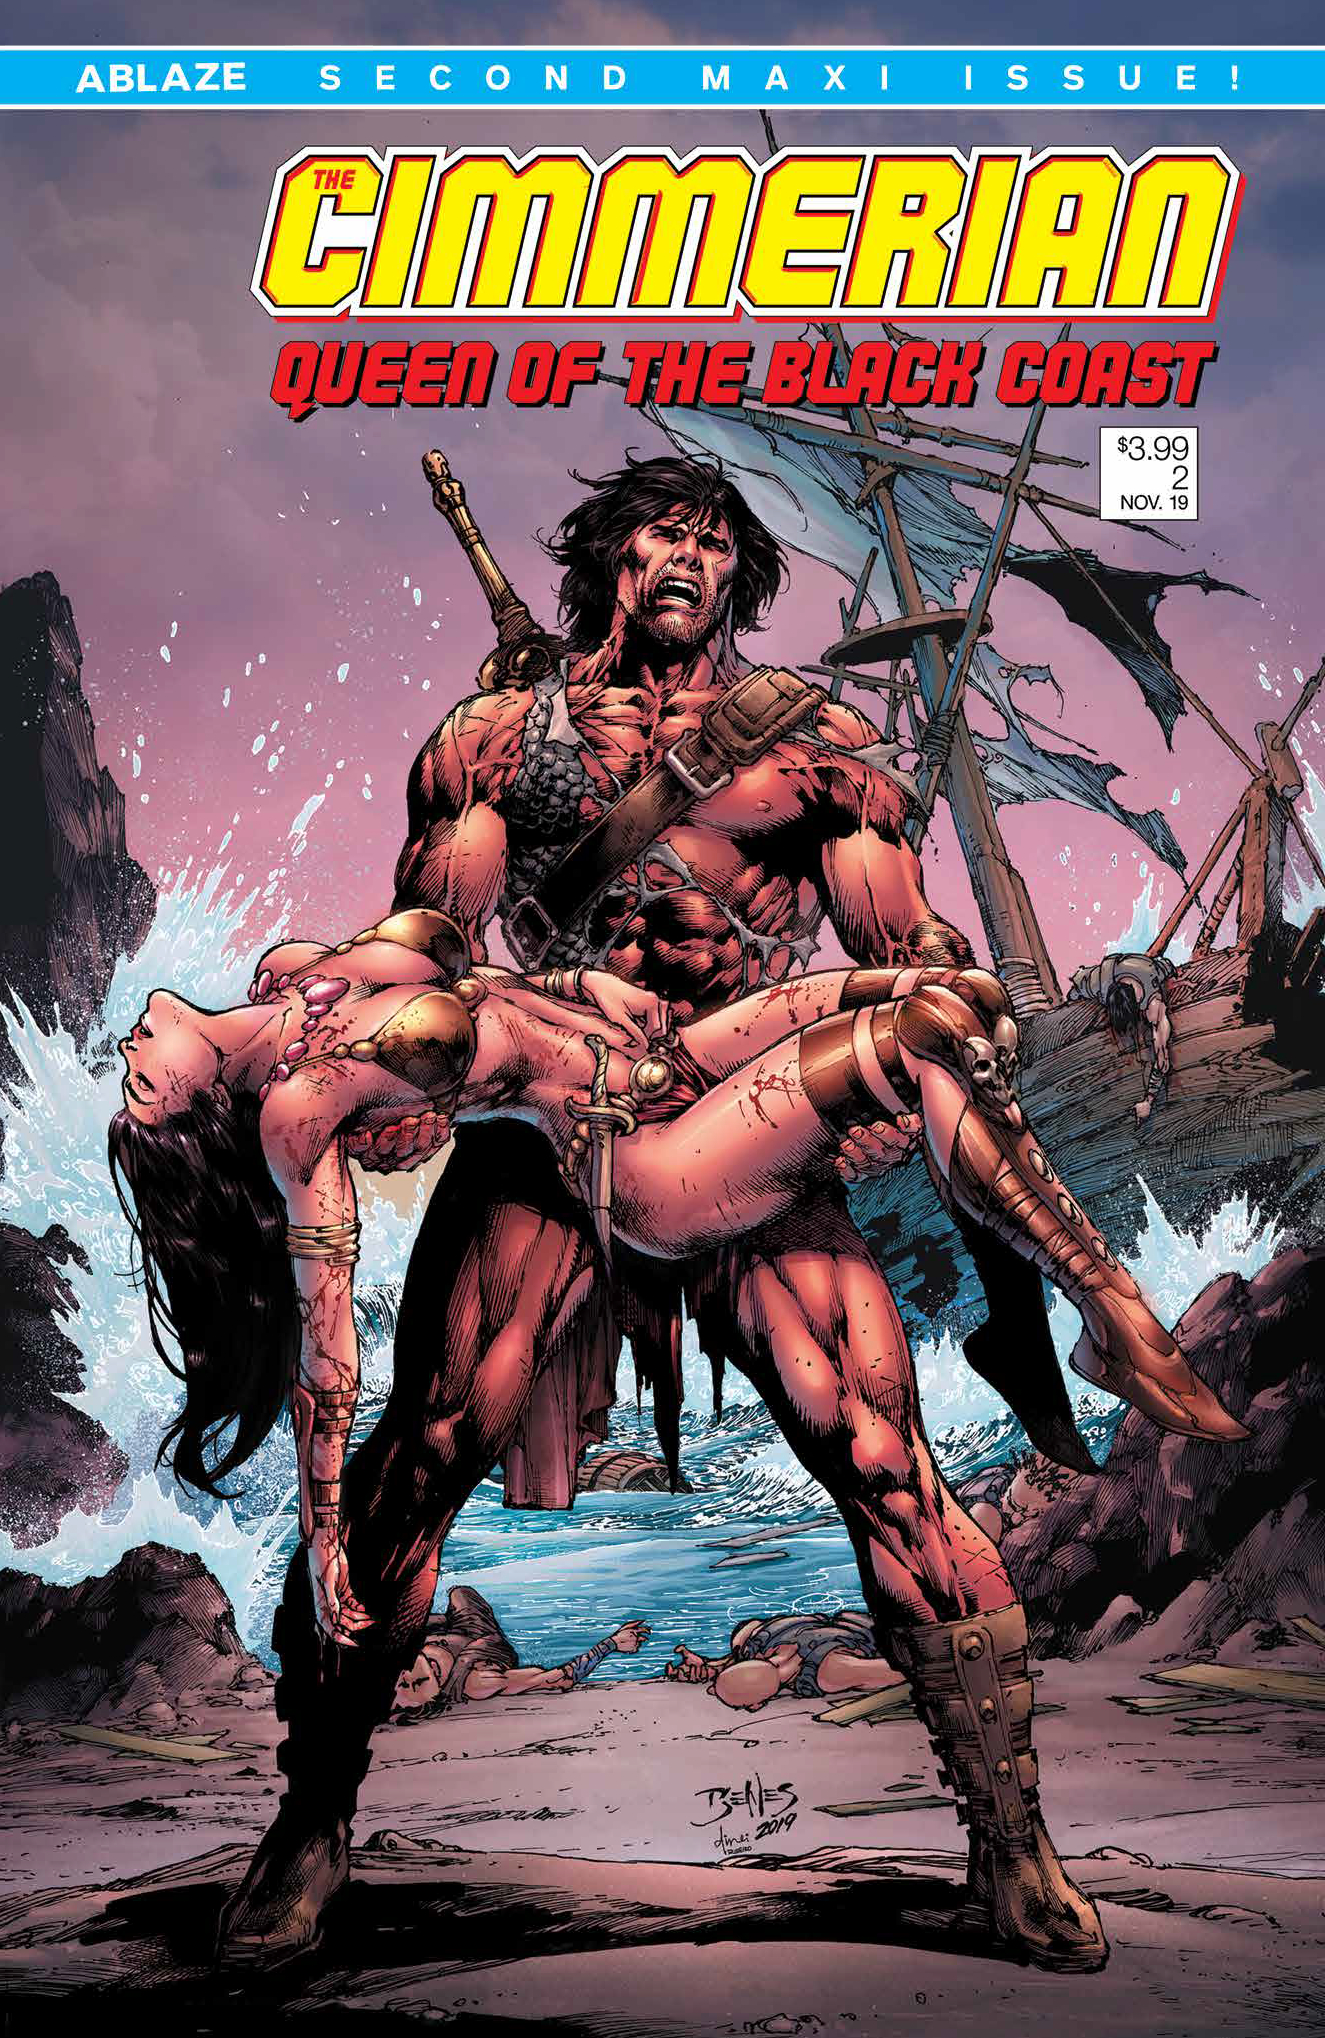 CIMMERIAN QUEEN OF BLACK COAST #2 CVR C ED BENES (MR)